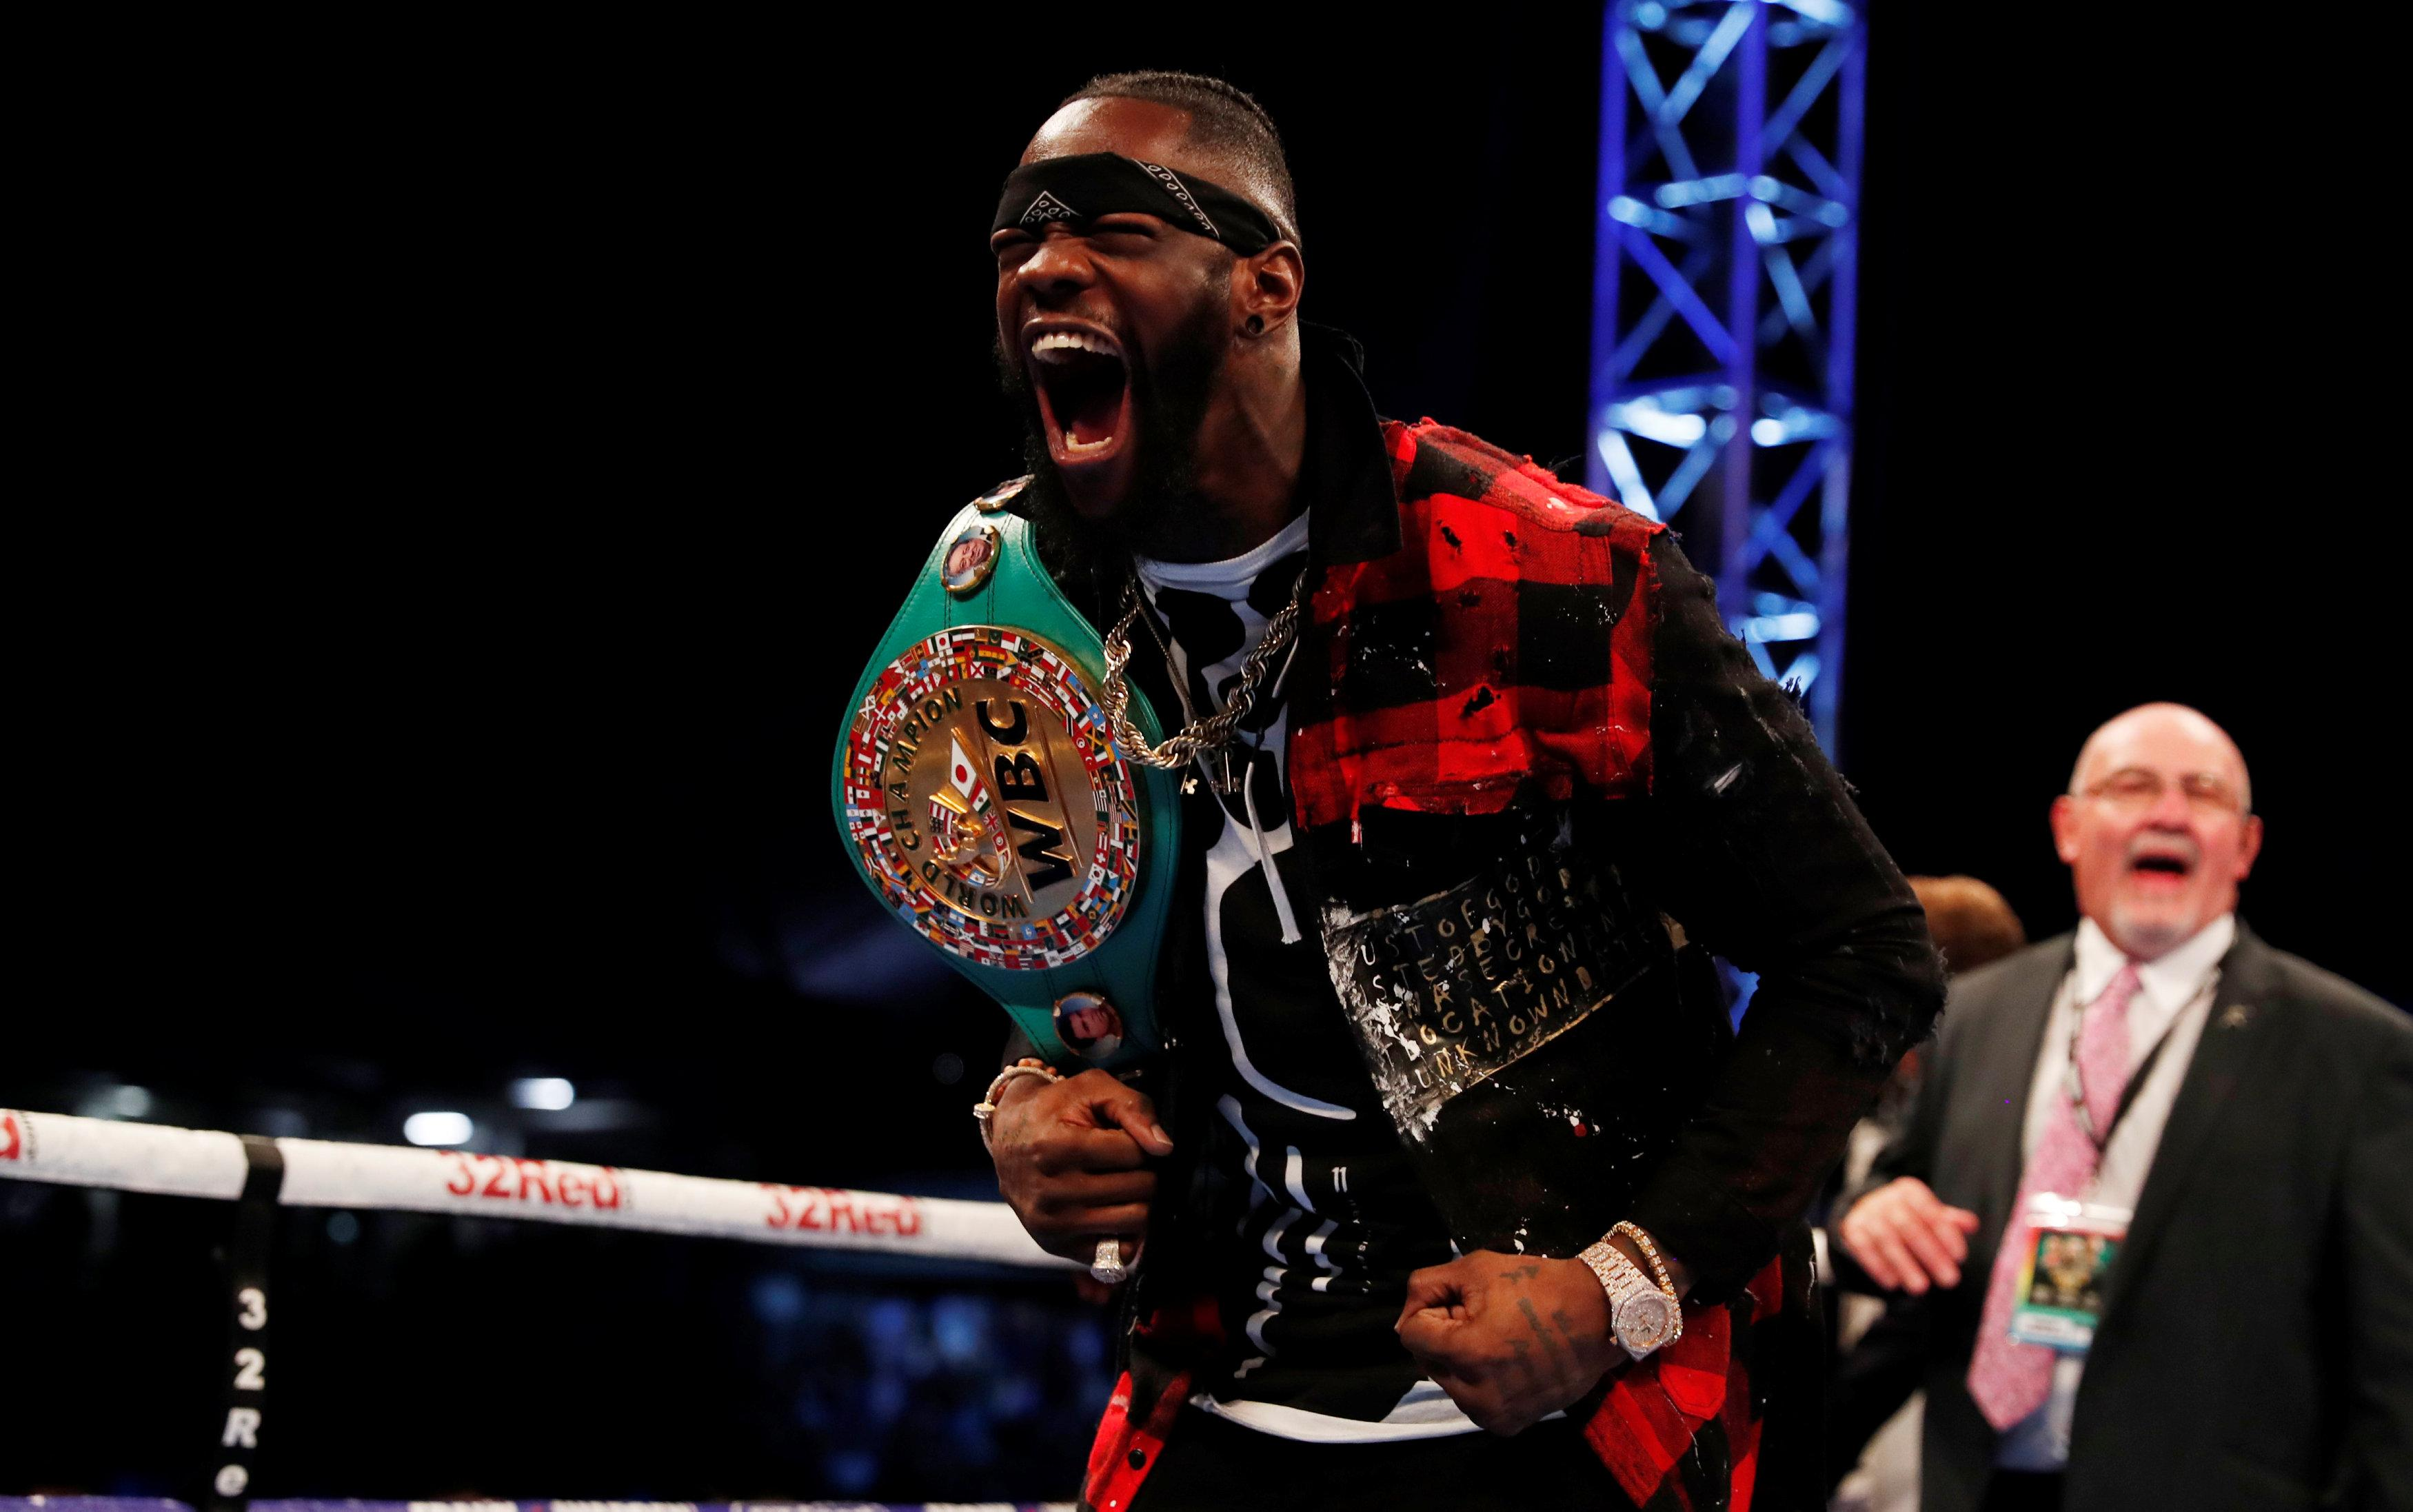 Jones also wants to take on fellow American and WBC champion Deontay Wilder